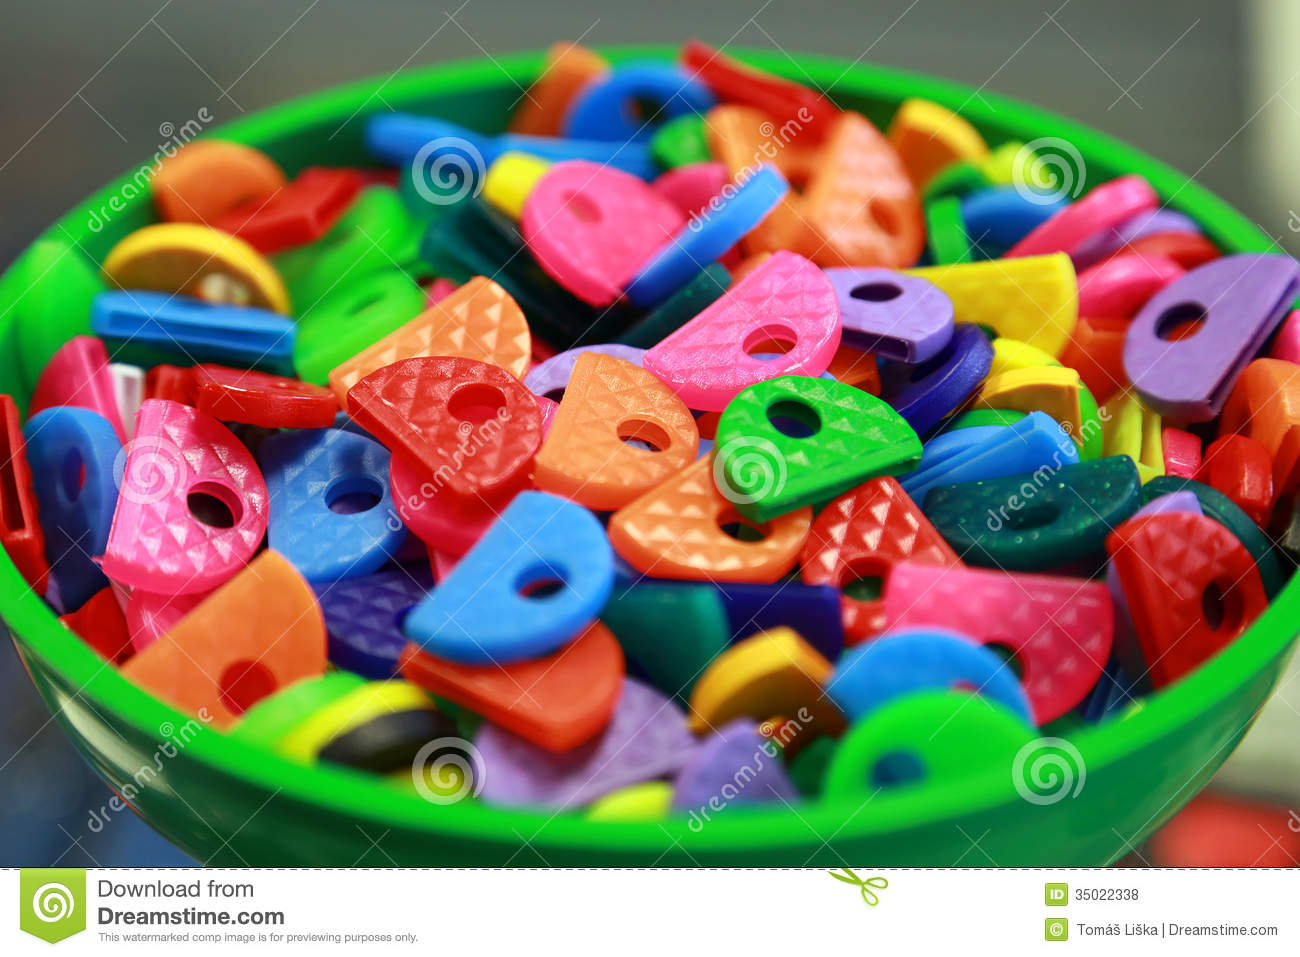 Colored key tags stock photo  Image of colorful, colors